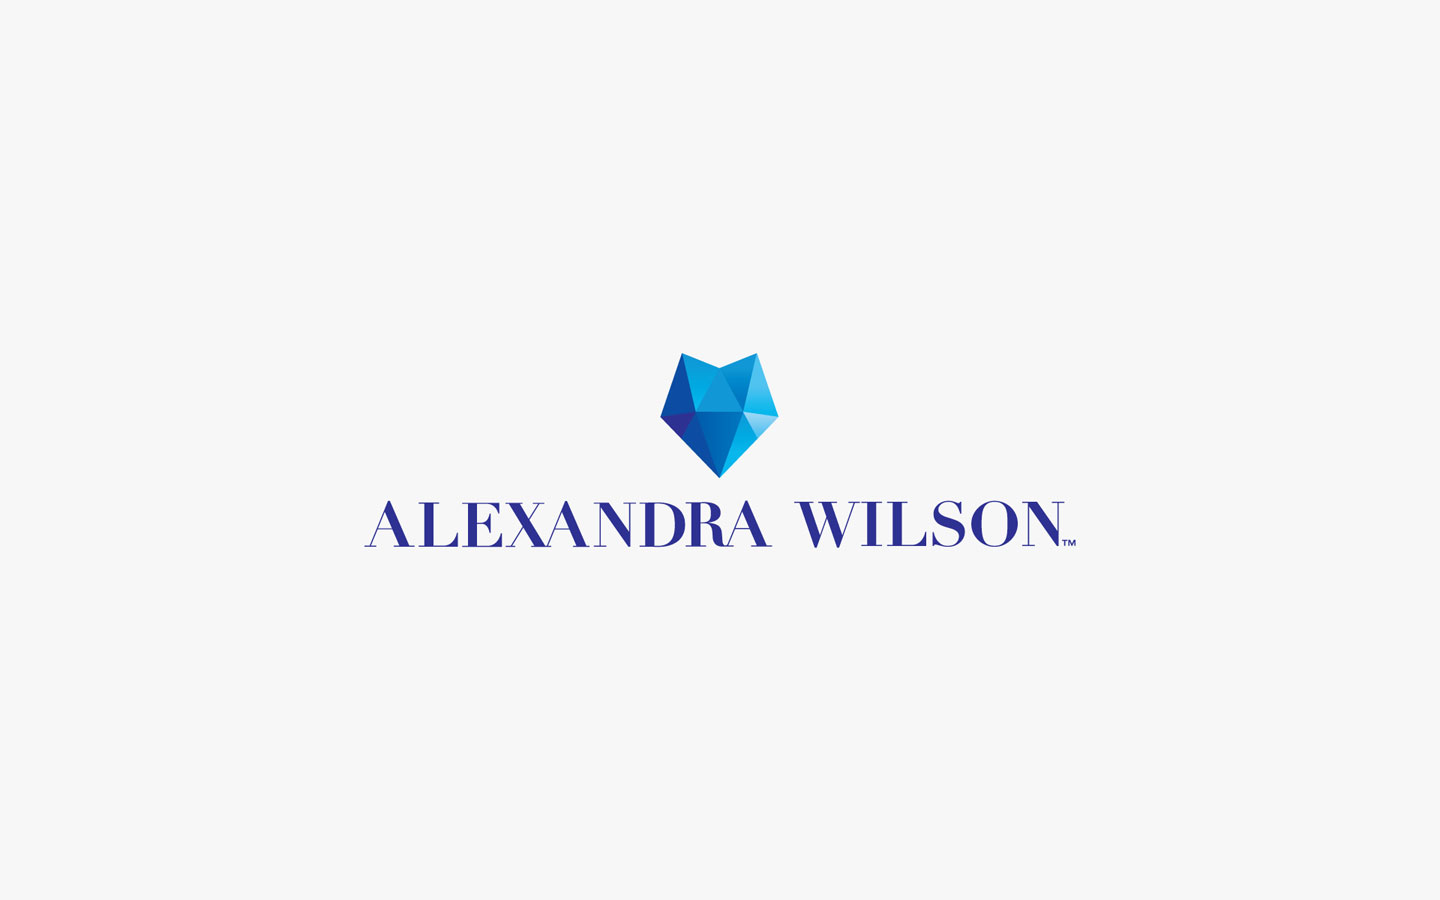 Alex Wilson Logo Design, in Brand Colours